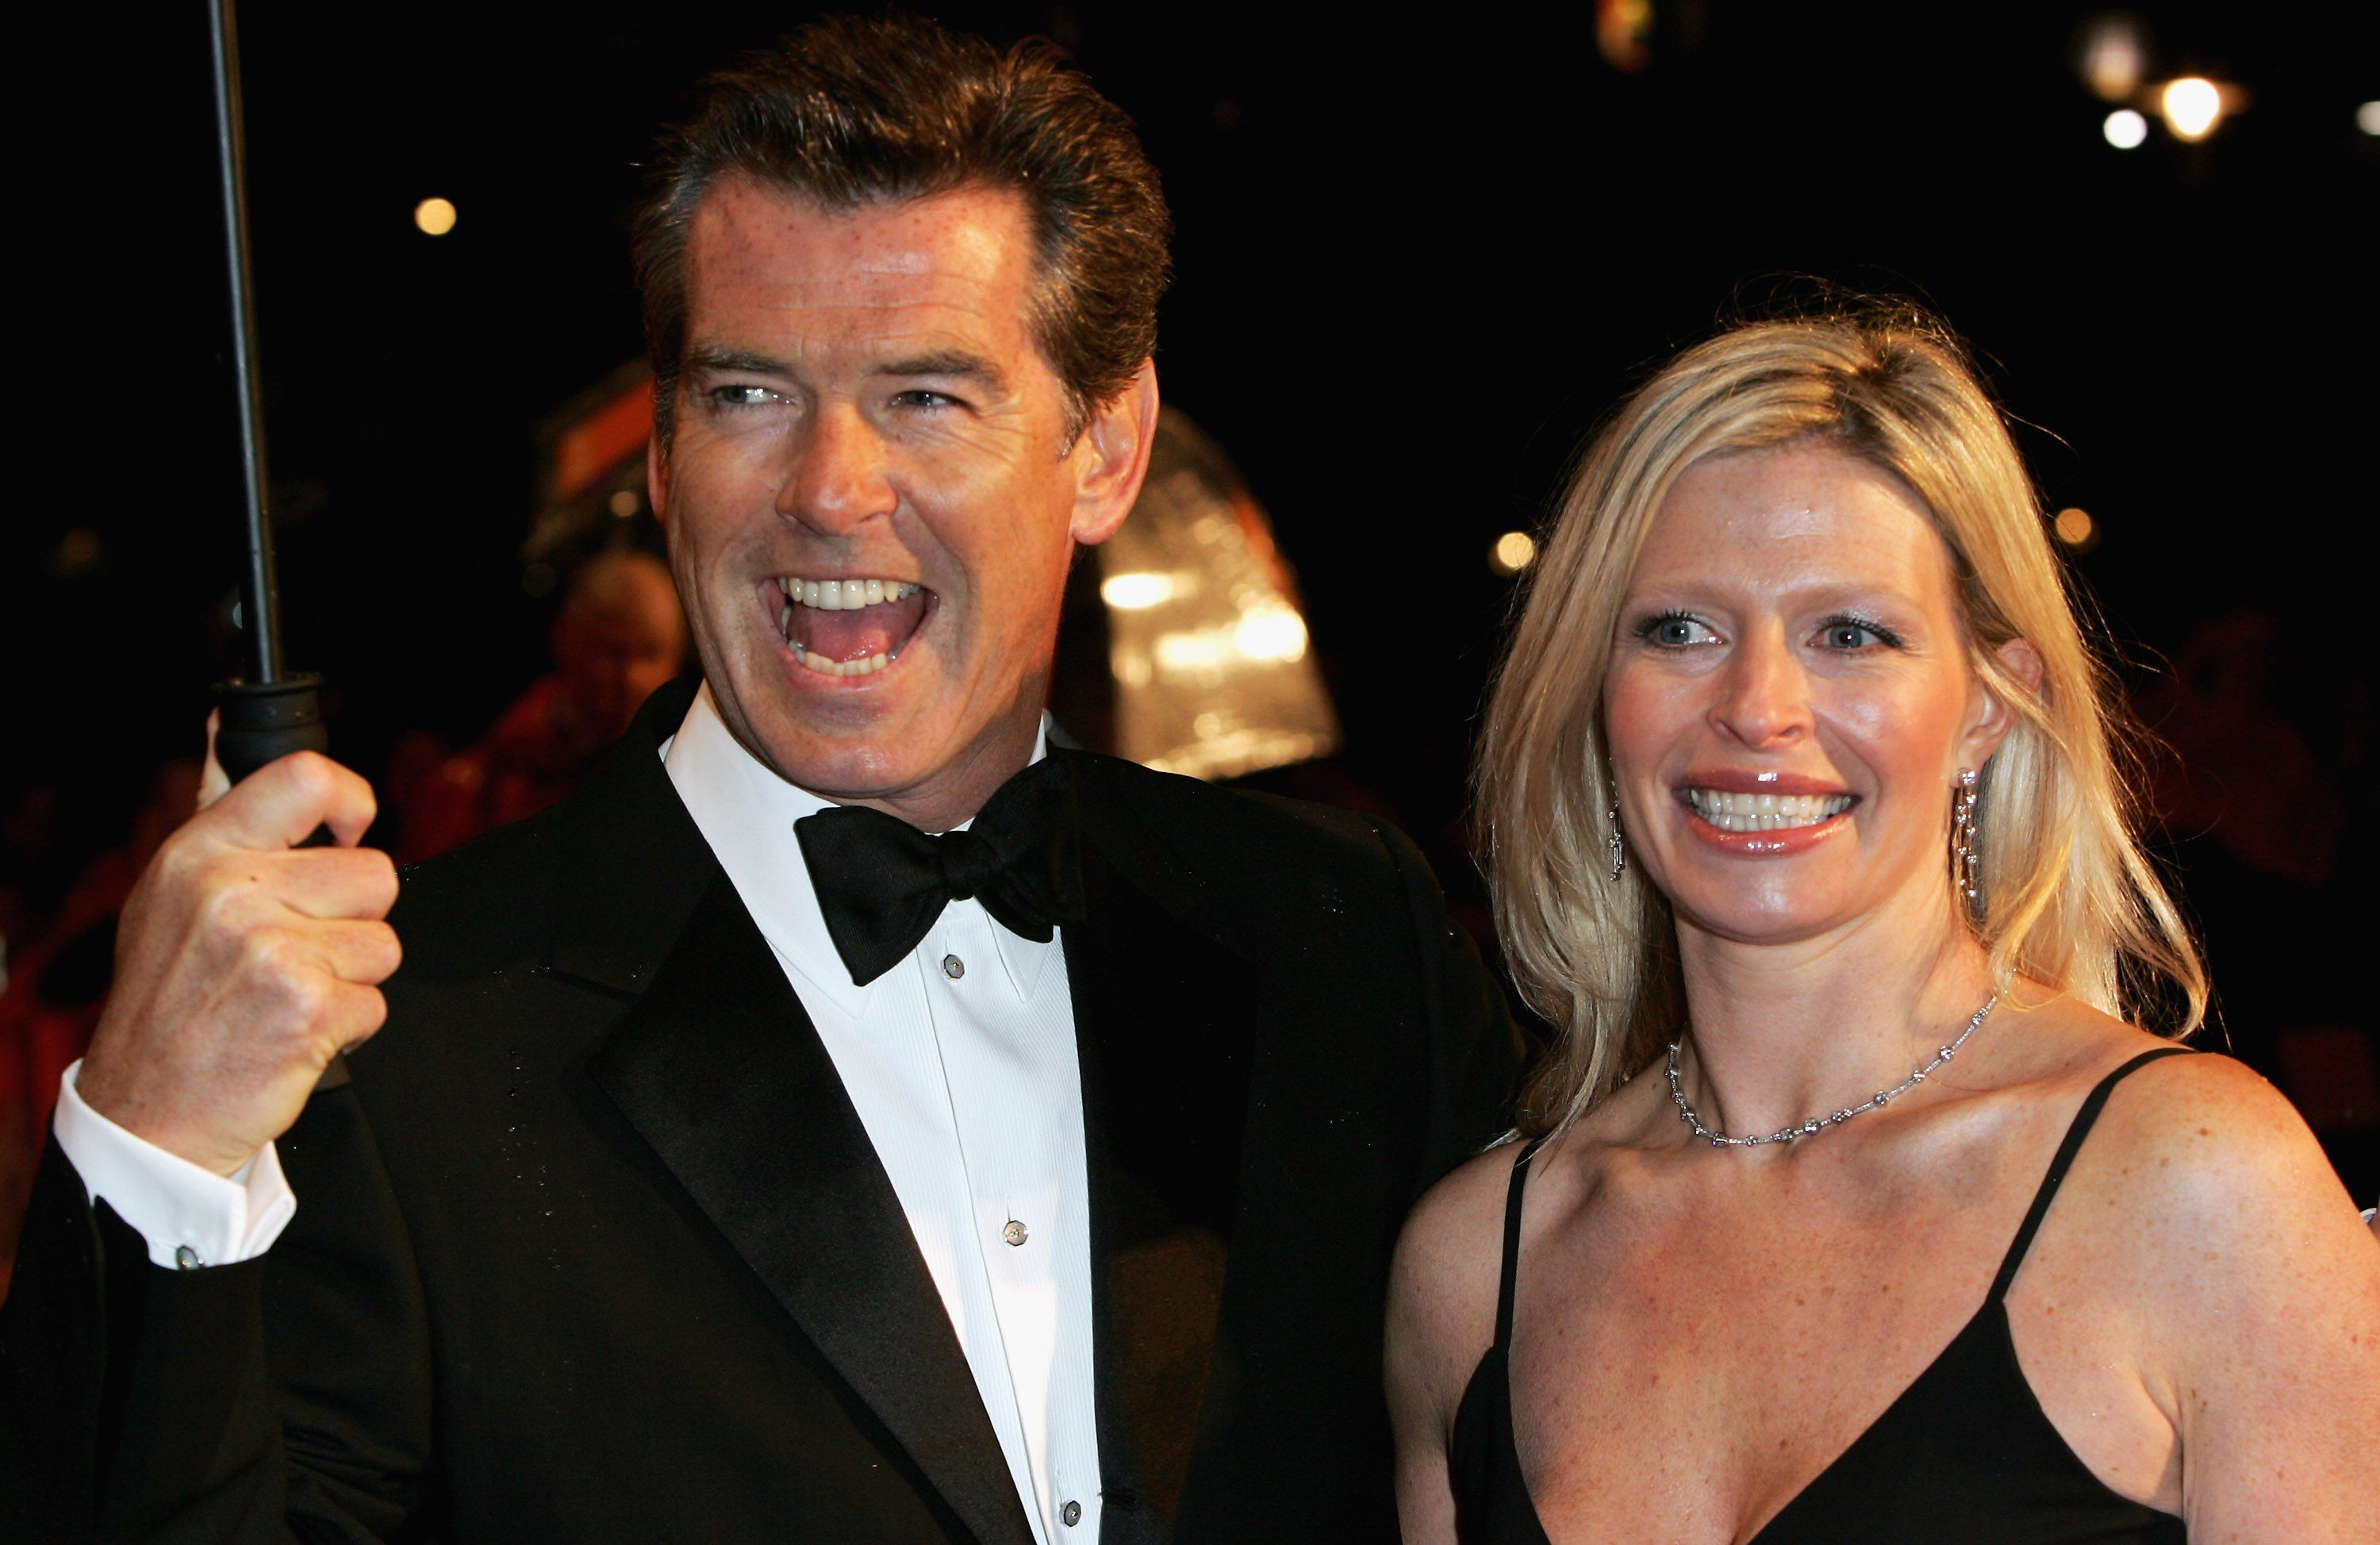 Pierce Brosnan and Charlotte Brosnan at The Orange British Academy Film Awards in 2006 in London | Source: Getty Images